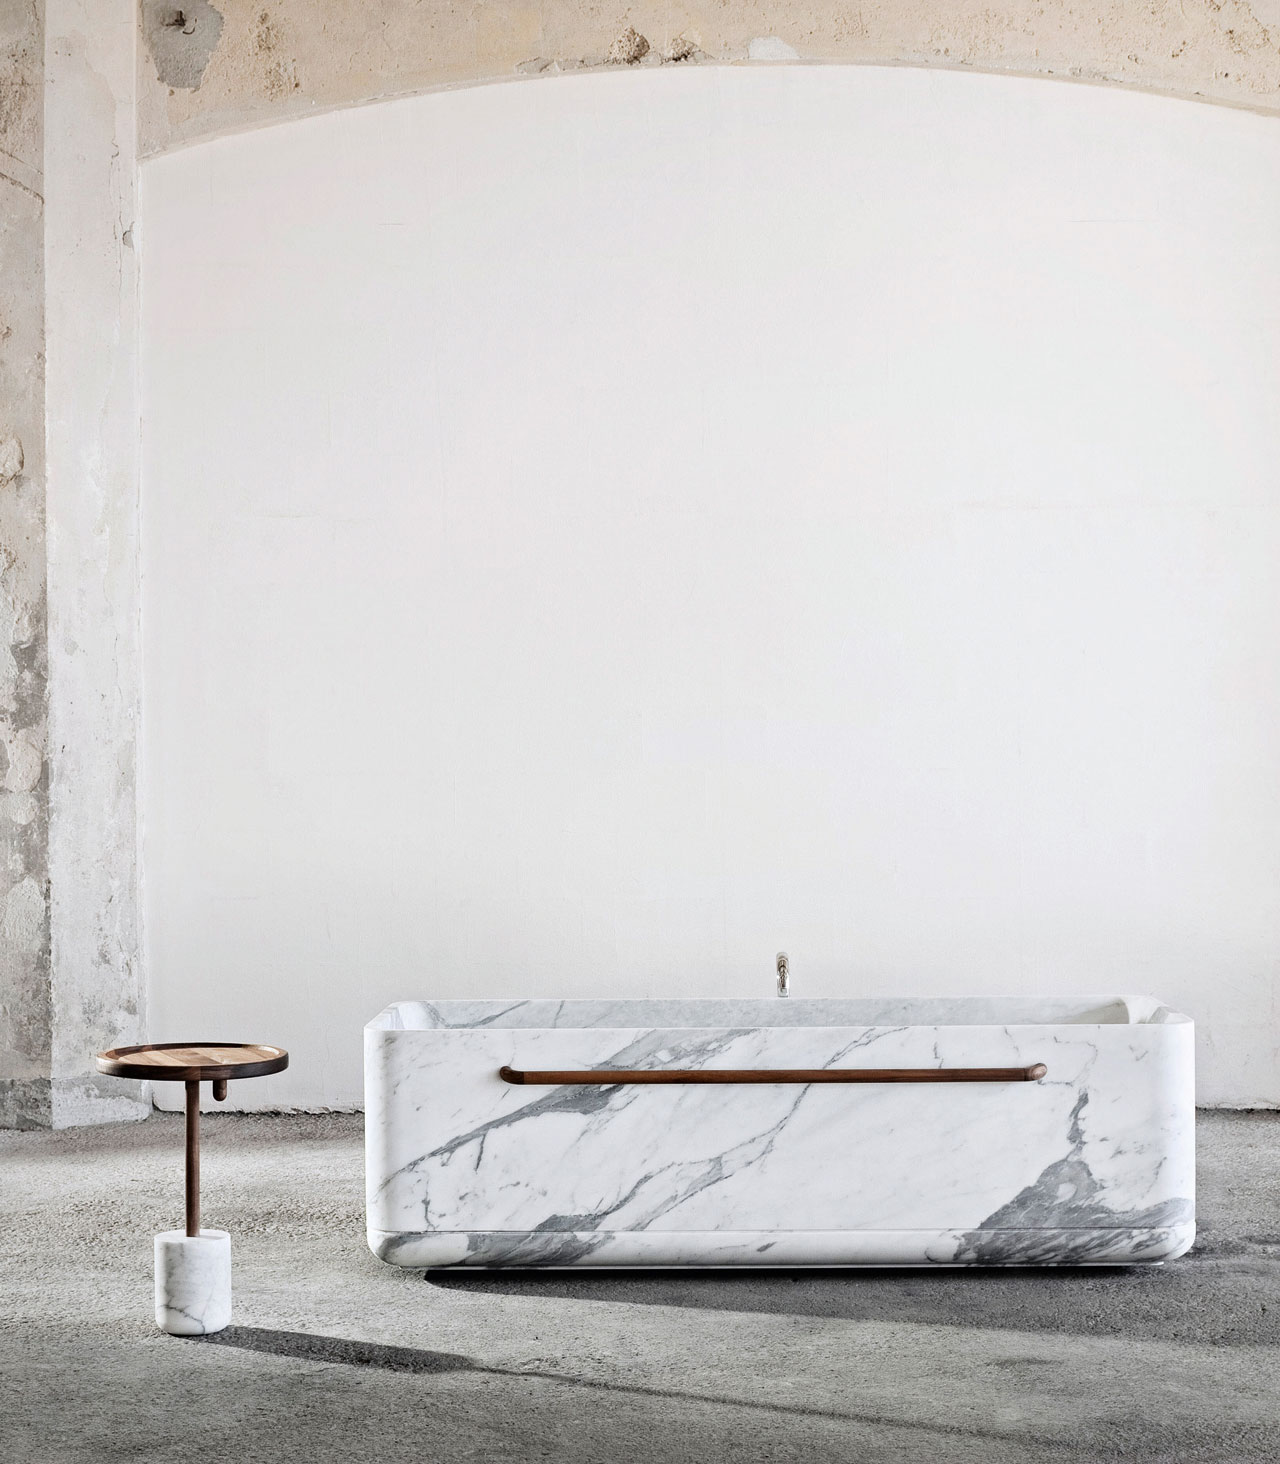 Tavolino side table and Vaska bath tub by Lorenzo Damiani from the MONOLITHOS series of Luce di Carrara.